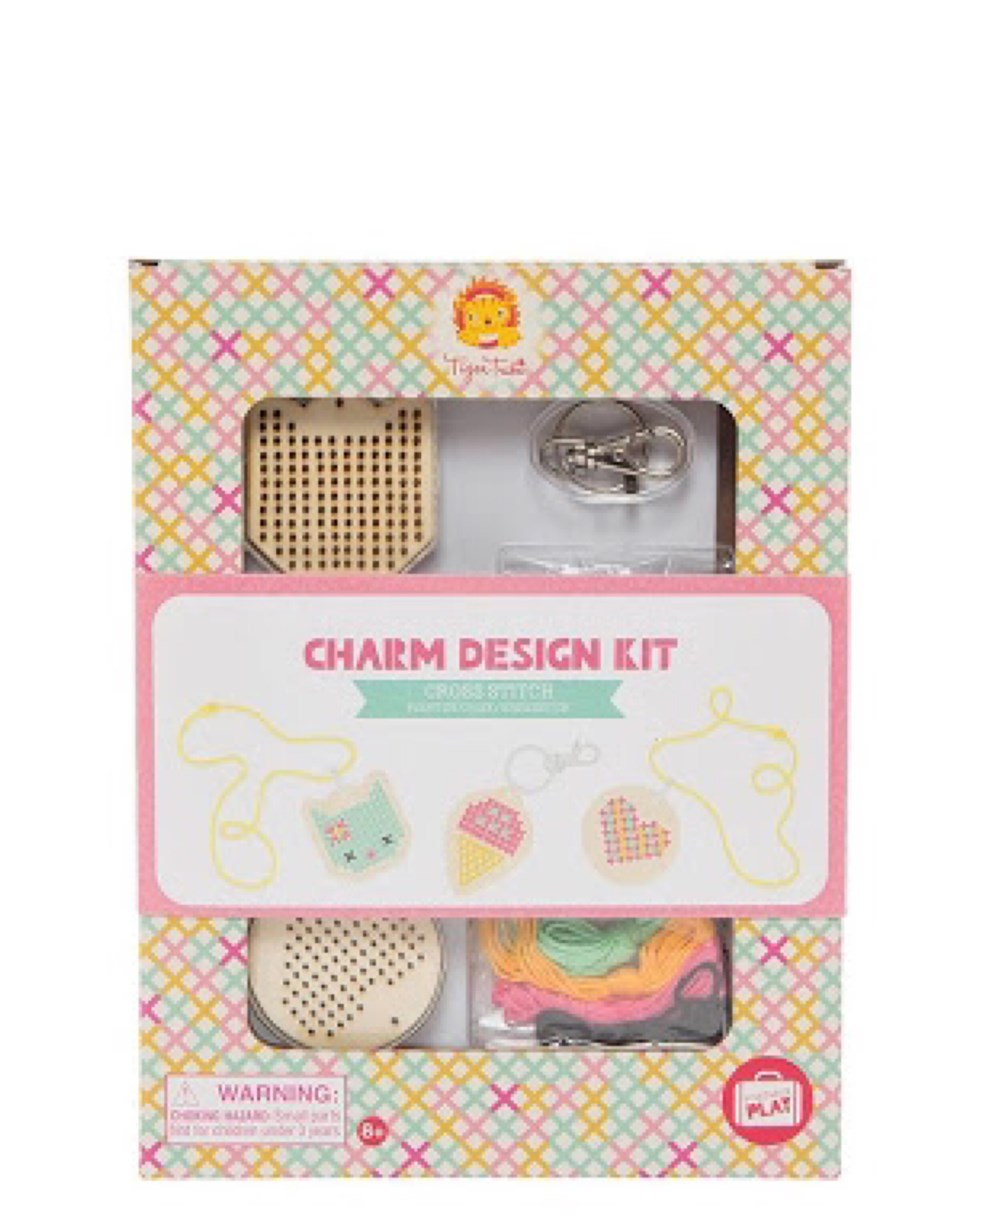 Tiger Tribe Charm Design Kit - Cross Stitch